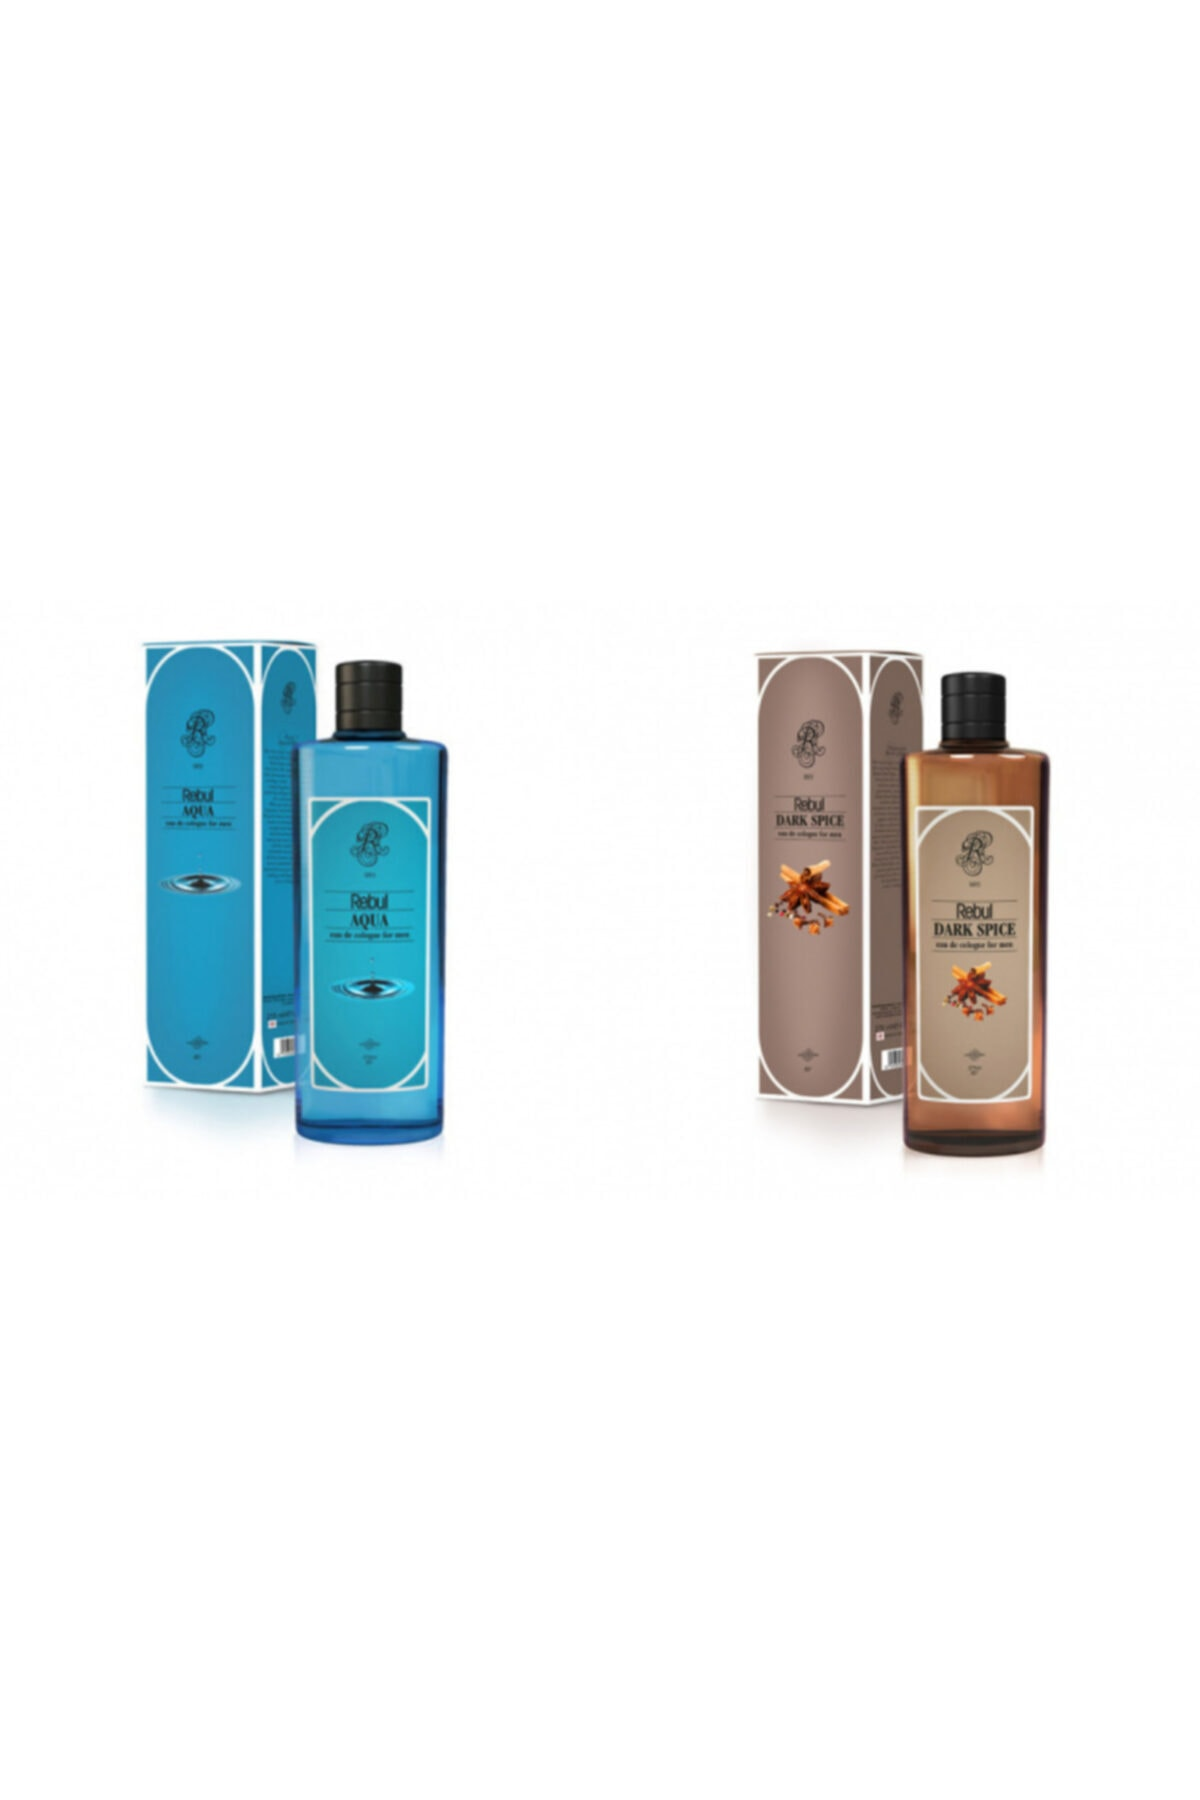 Rebul Aqua + Dark Spice 270 Ml Cam Şişe Set 1